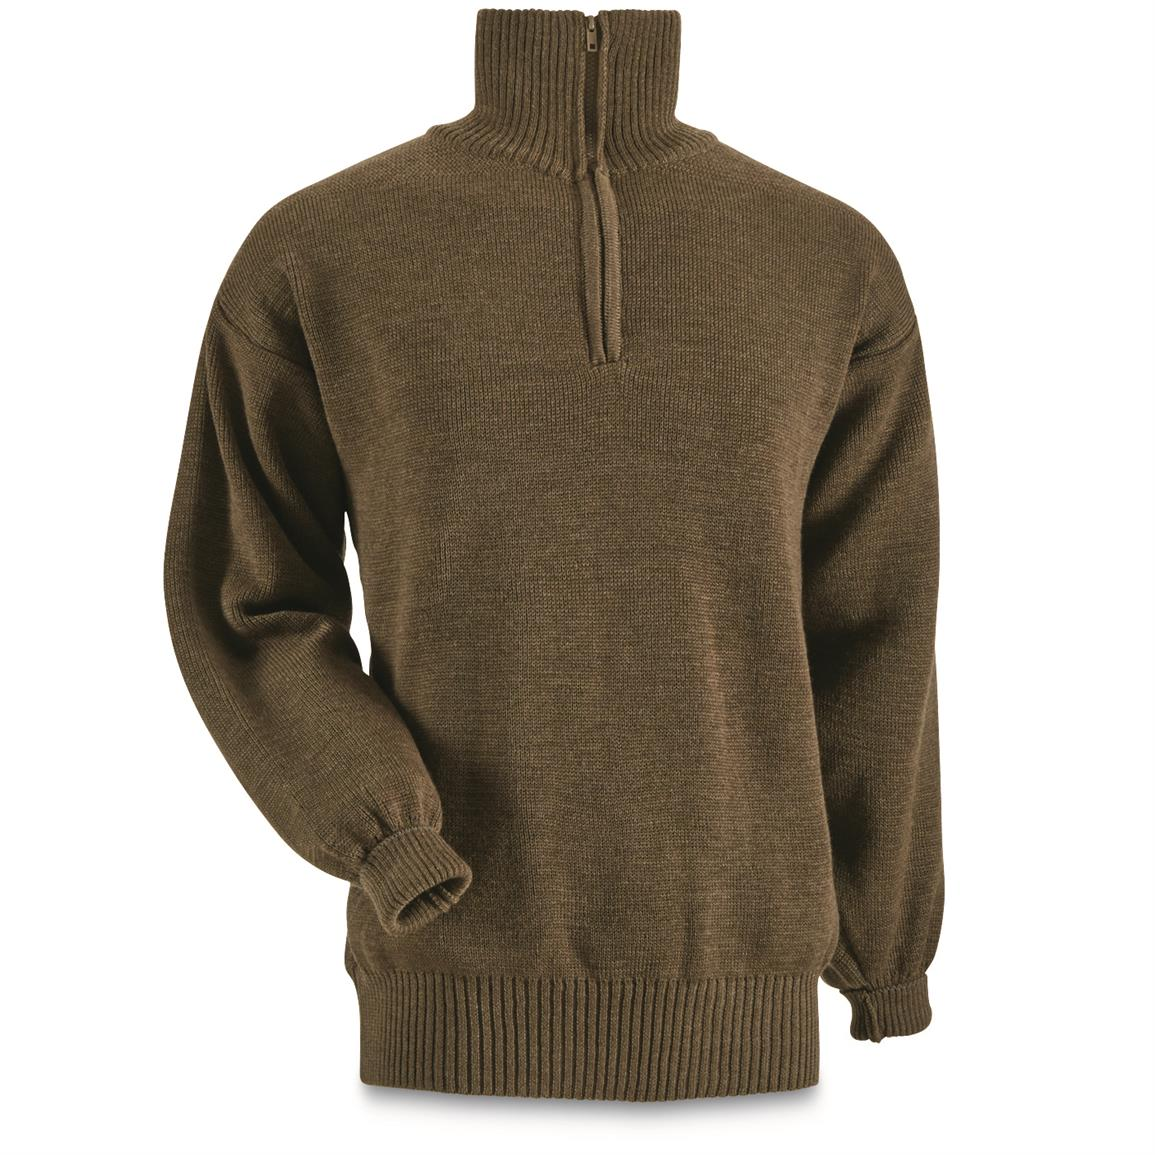 1/4 zip neck pullover design